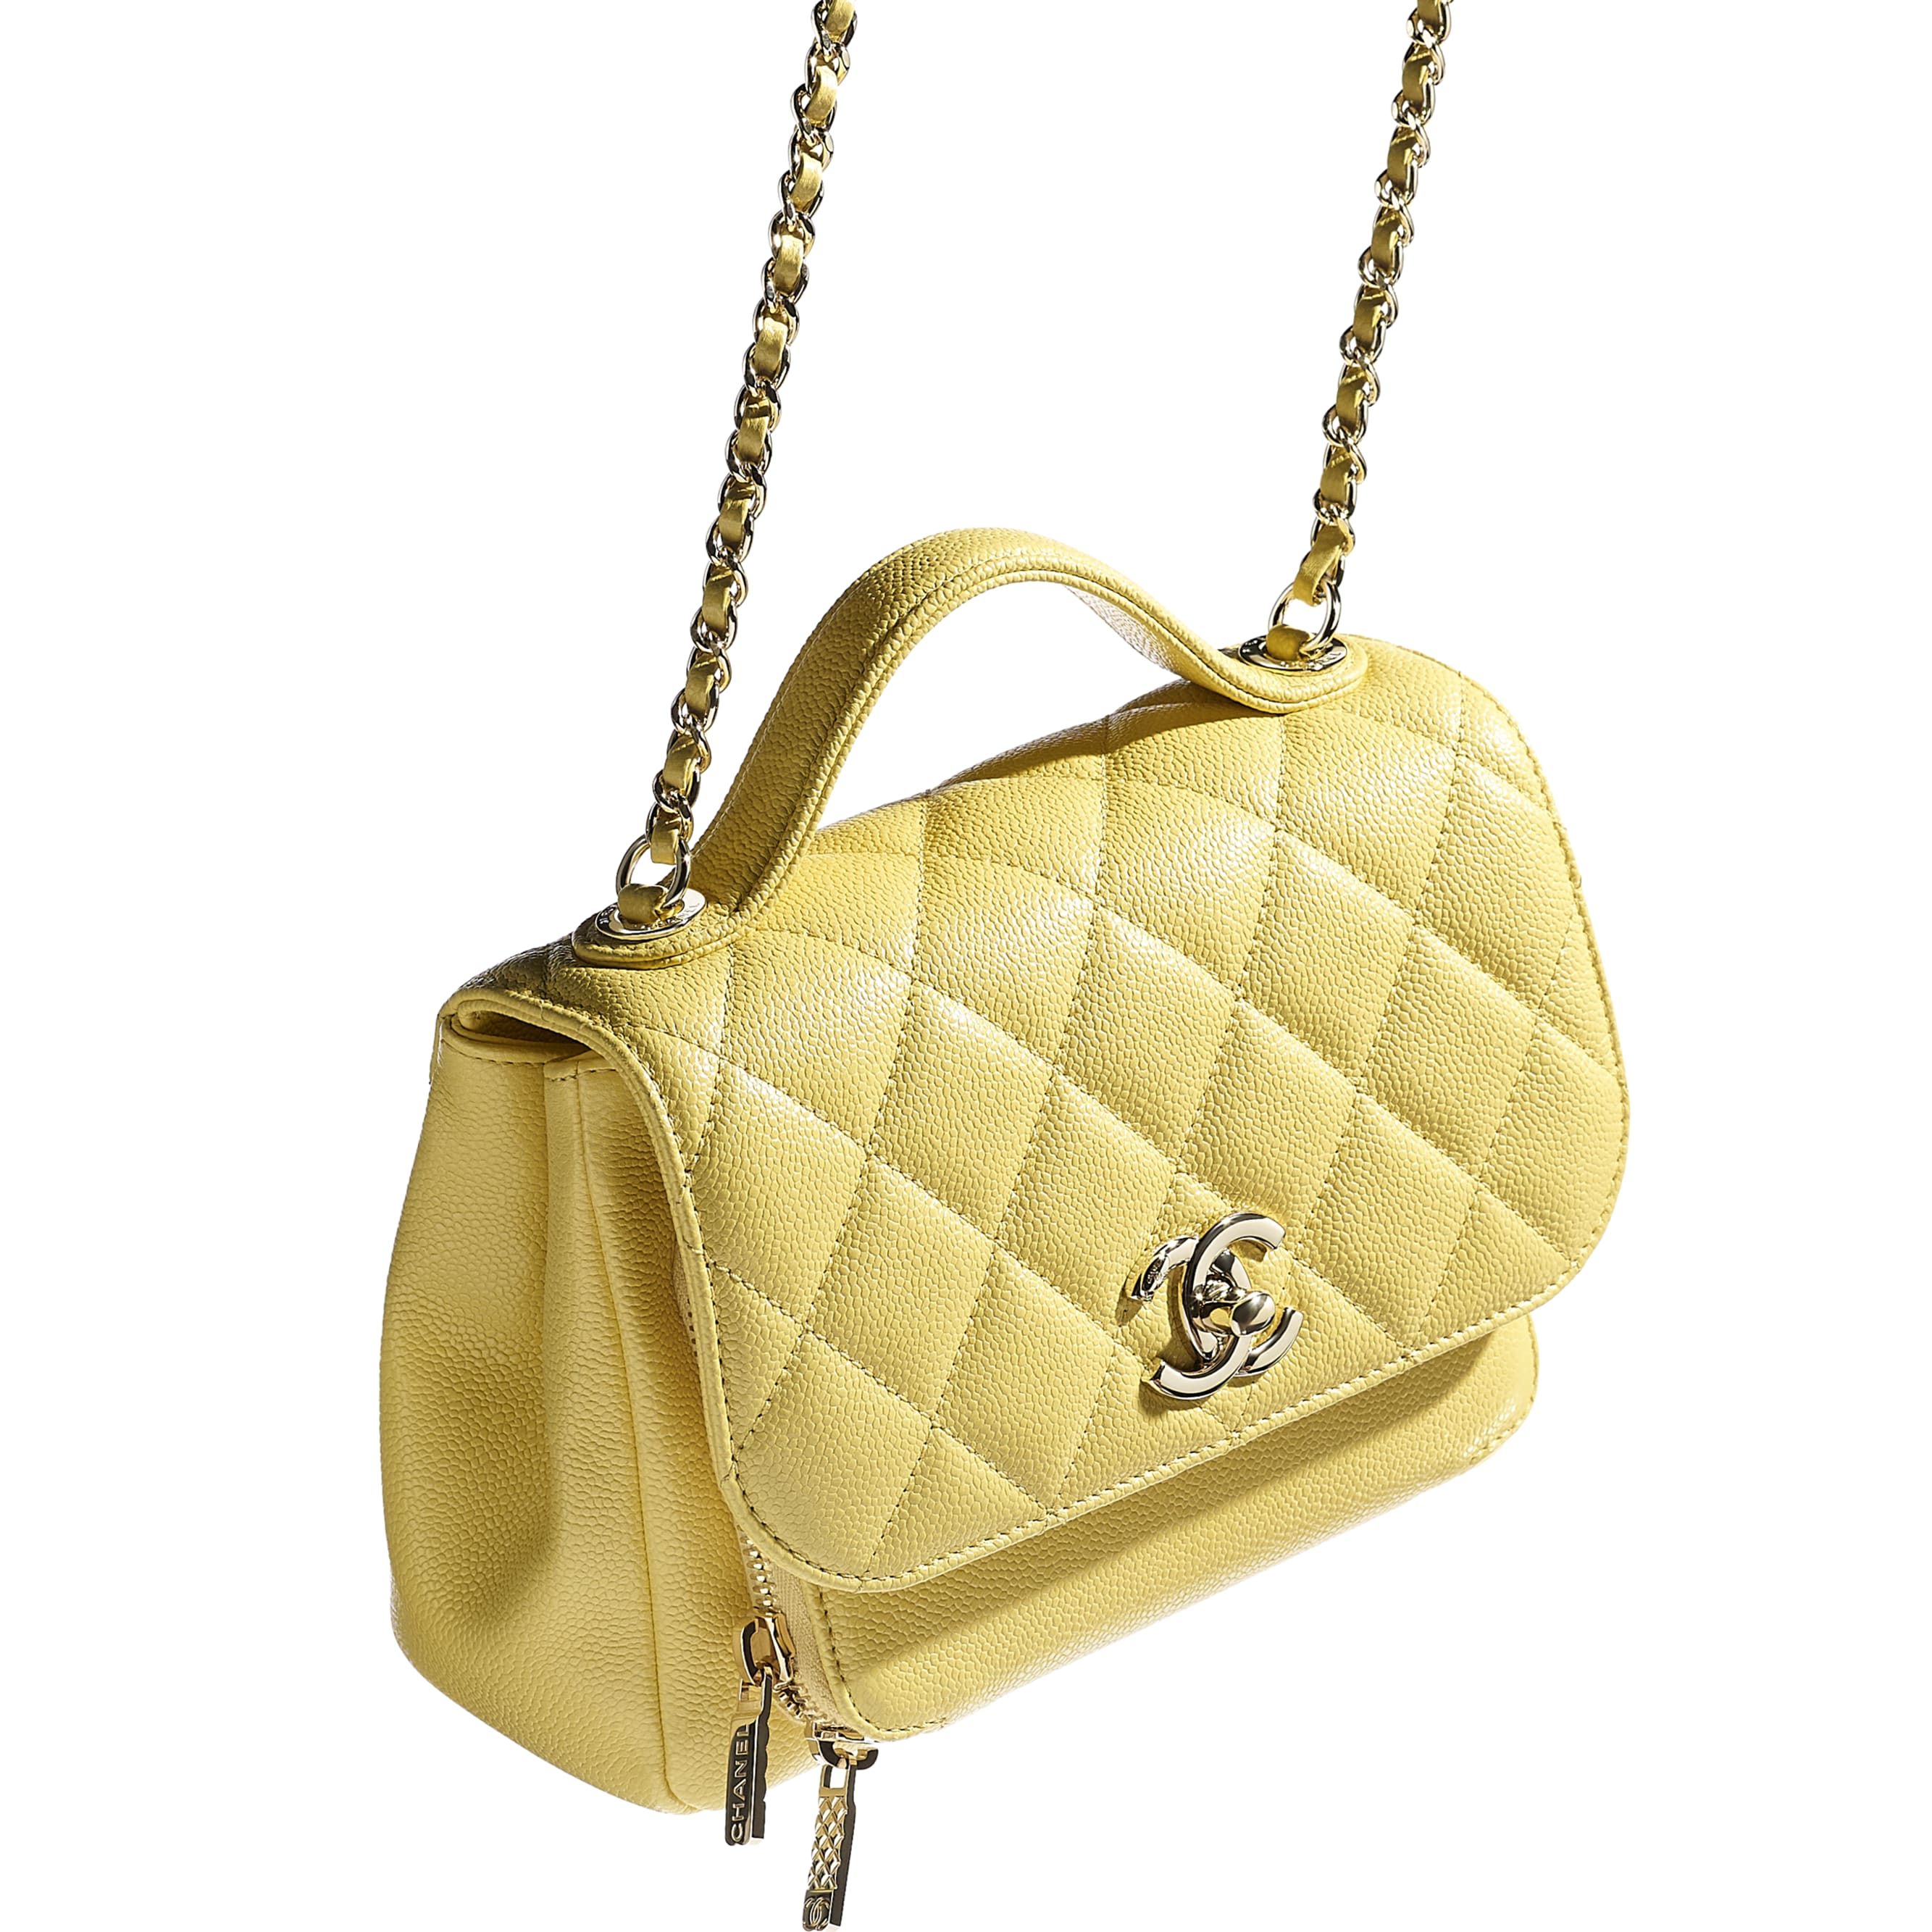 Small Flap Bag With Top Handle - Yellow - Grained Calfskin & Gold-Tone Metal - CHANEL - Extra view - see standard sized version